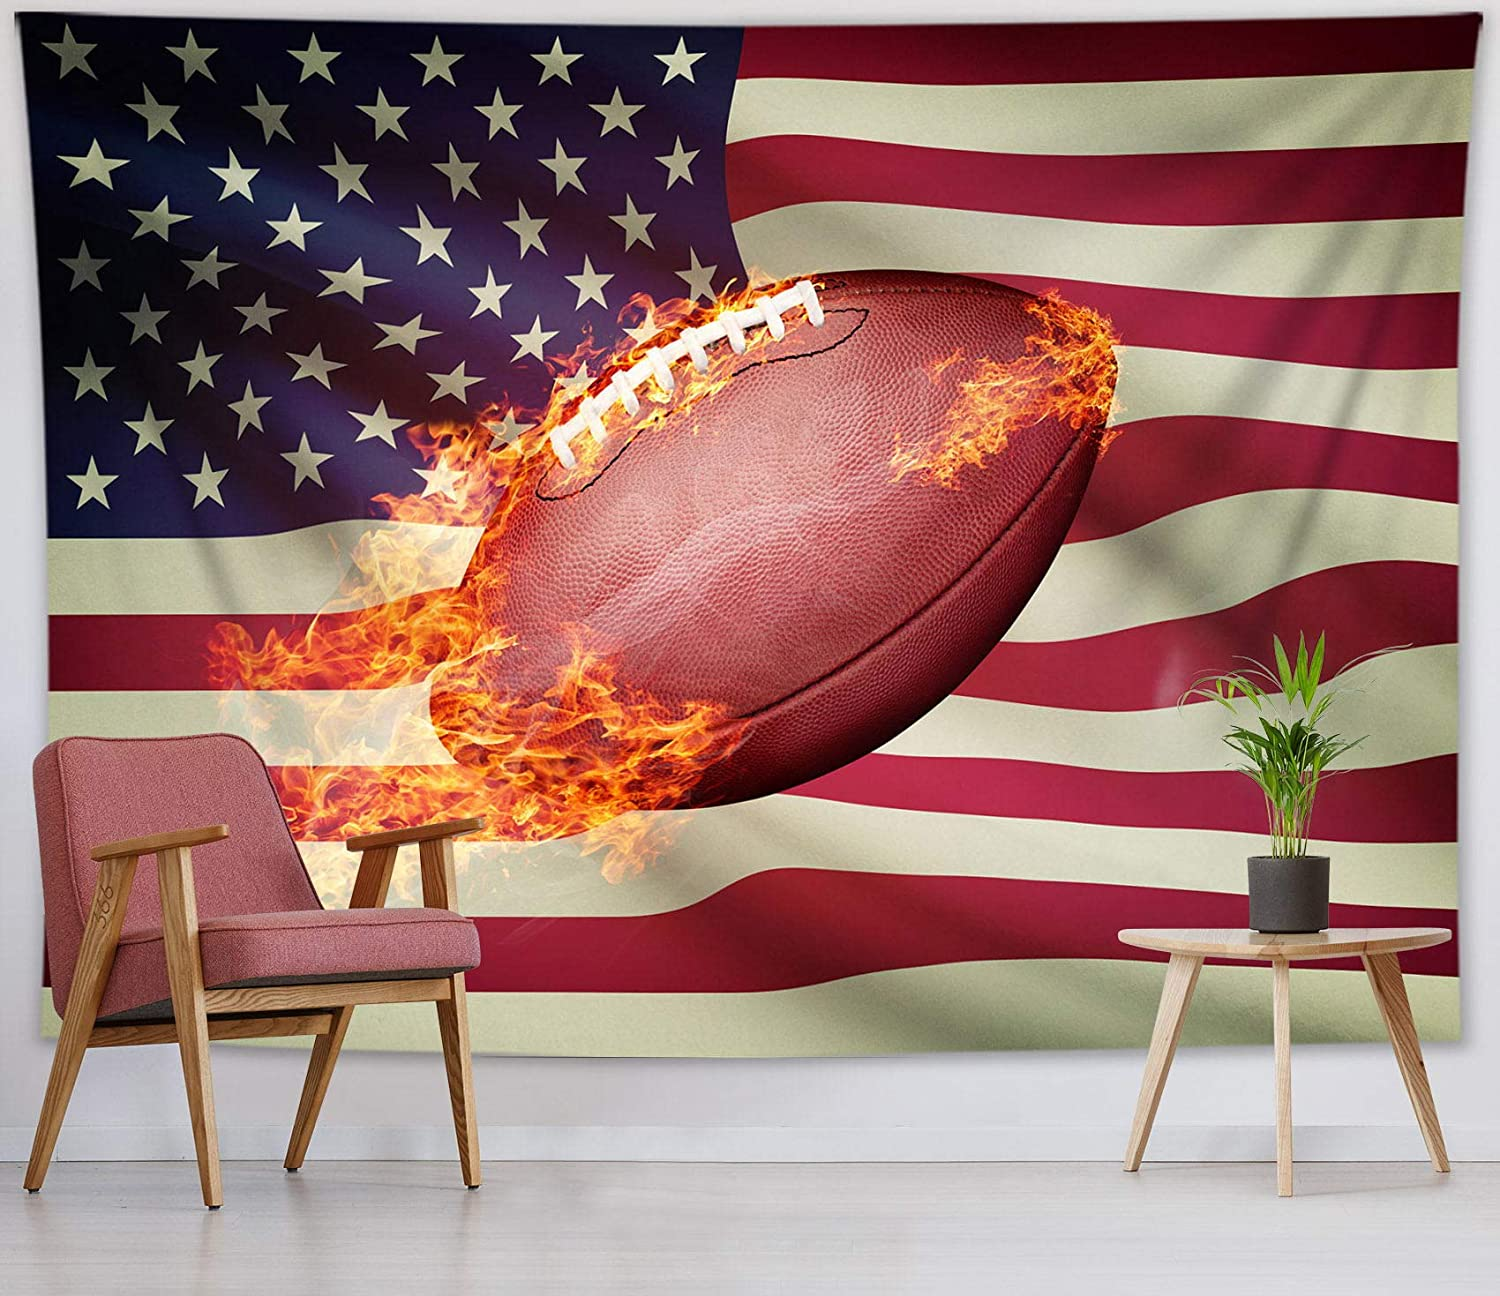 HVEST American Flag Football Tapestry Wall Hanging Sports Wall Tapestry Flaming Football Tapestry American Flag Backdrop for Men Boys Bedroom Room Decor,60Wx40H inches